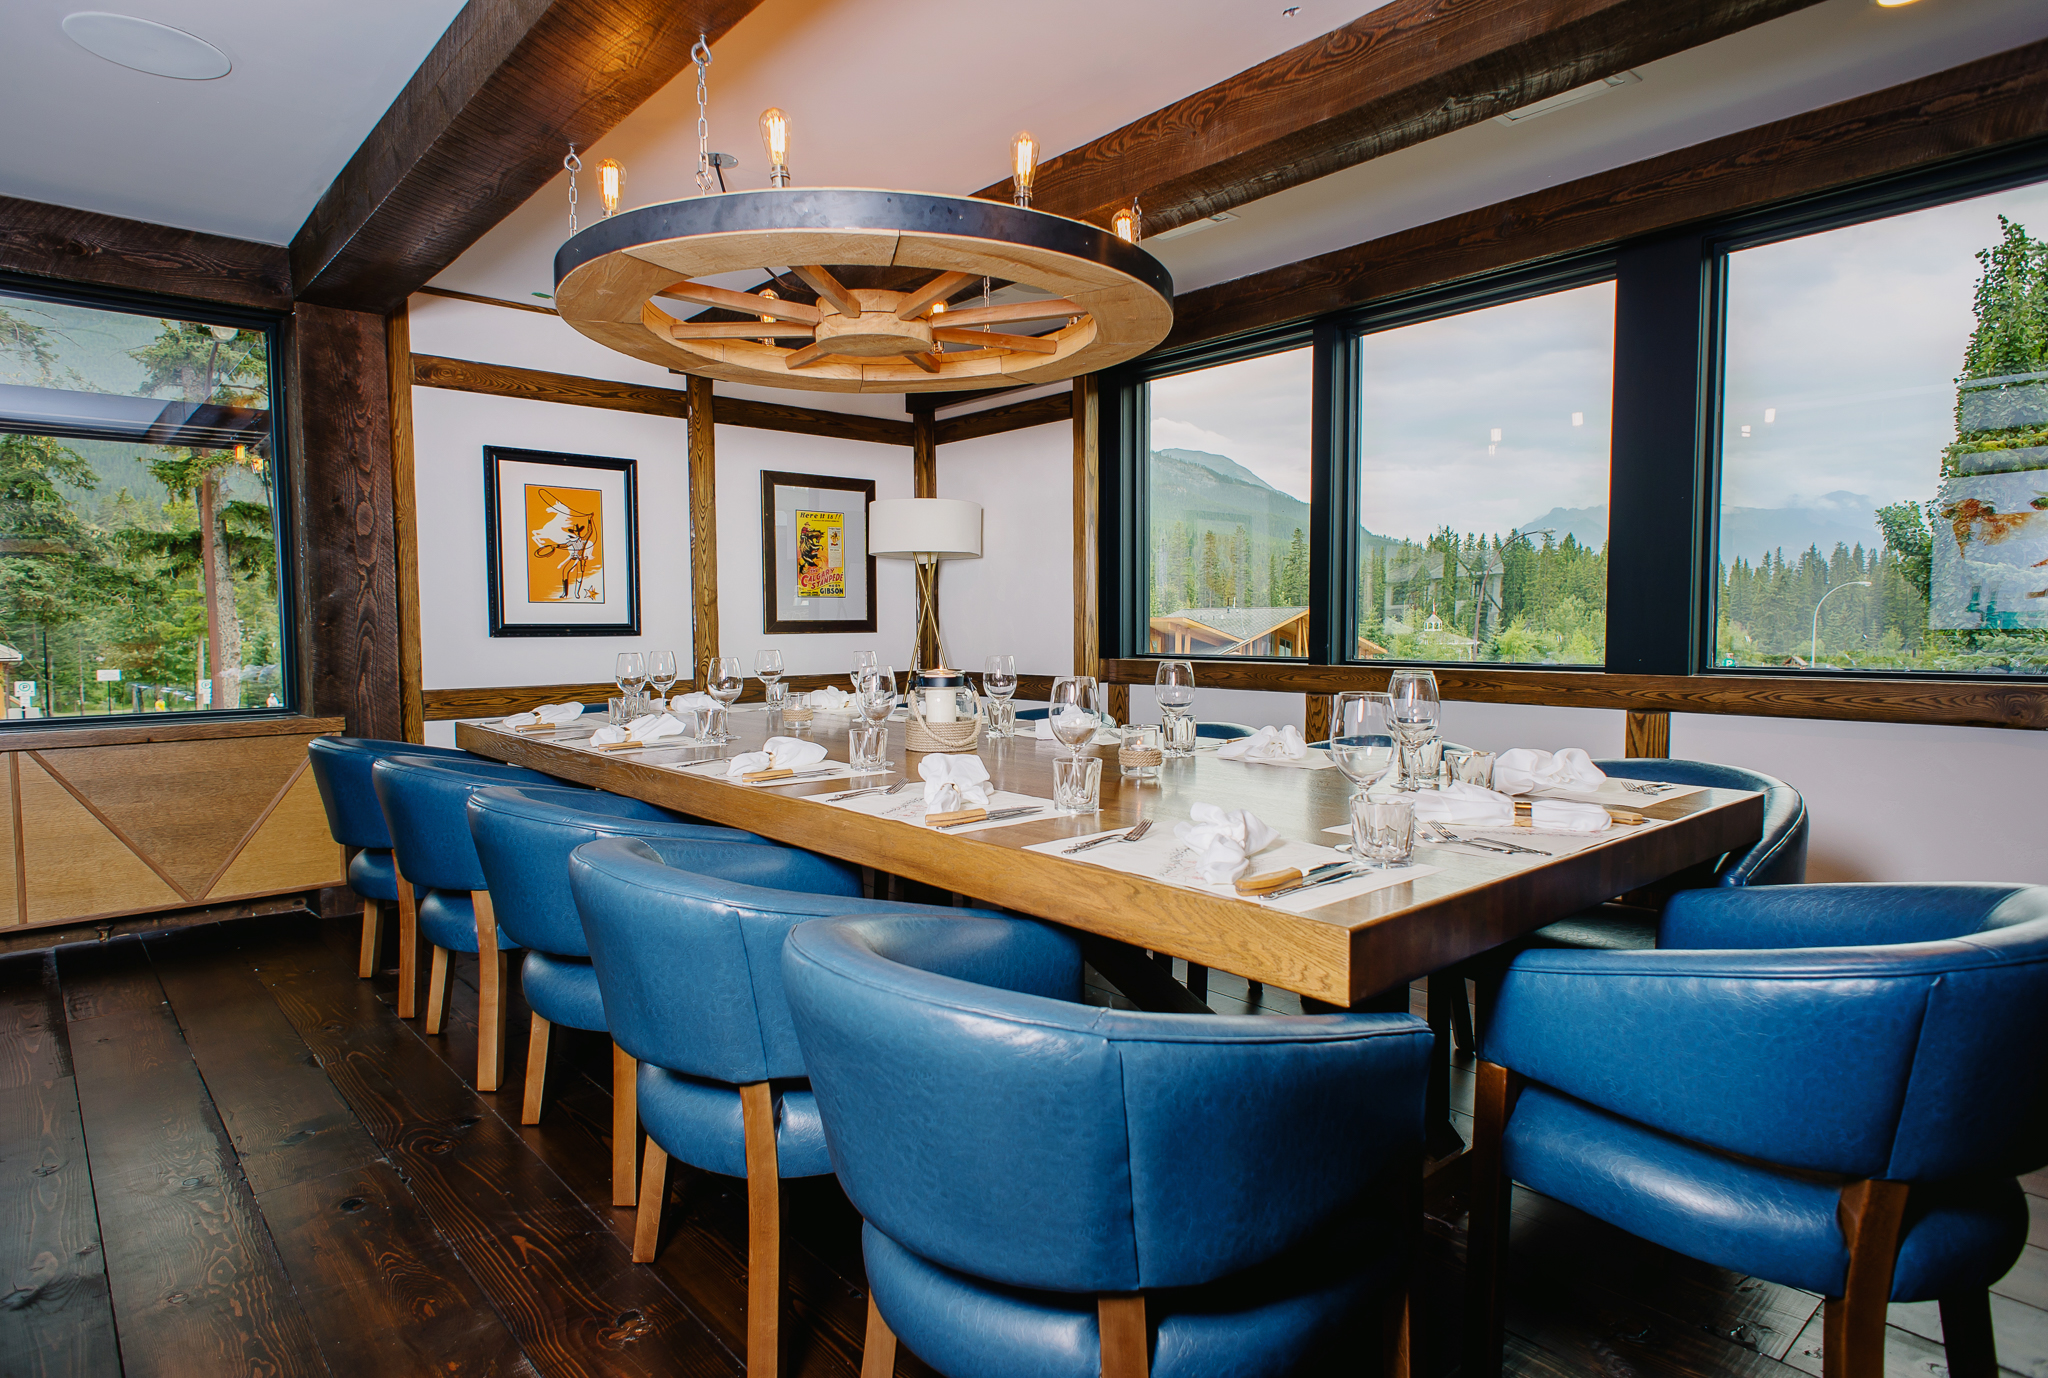 Private Dining Room - 8-12 or up to 22 PEOPLERiver & mountain view windows, our hidden gem can be sectioned off with privacy curtains to seat 8-12 guests privately or the whole room can be booked exclusively to seat as many as 22 guests.